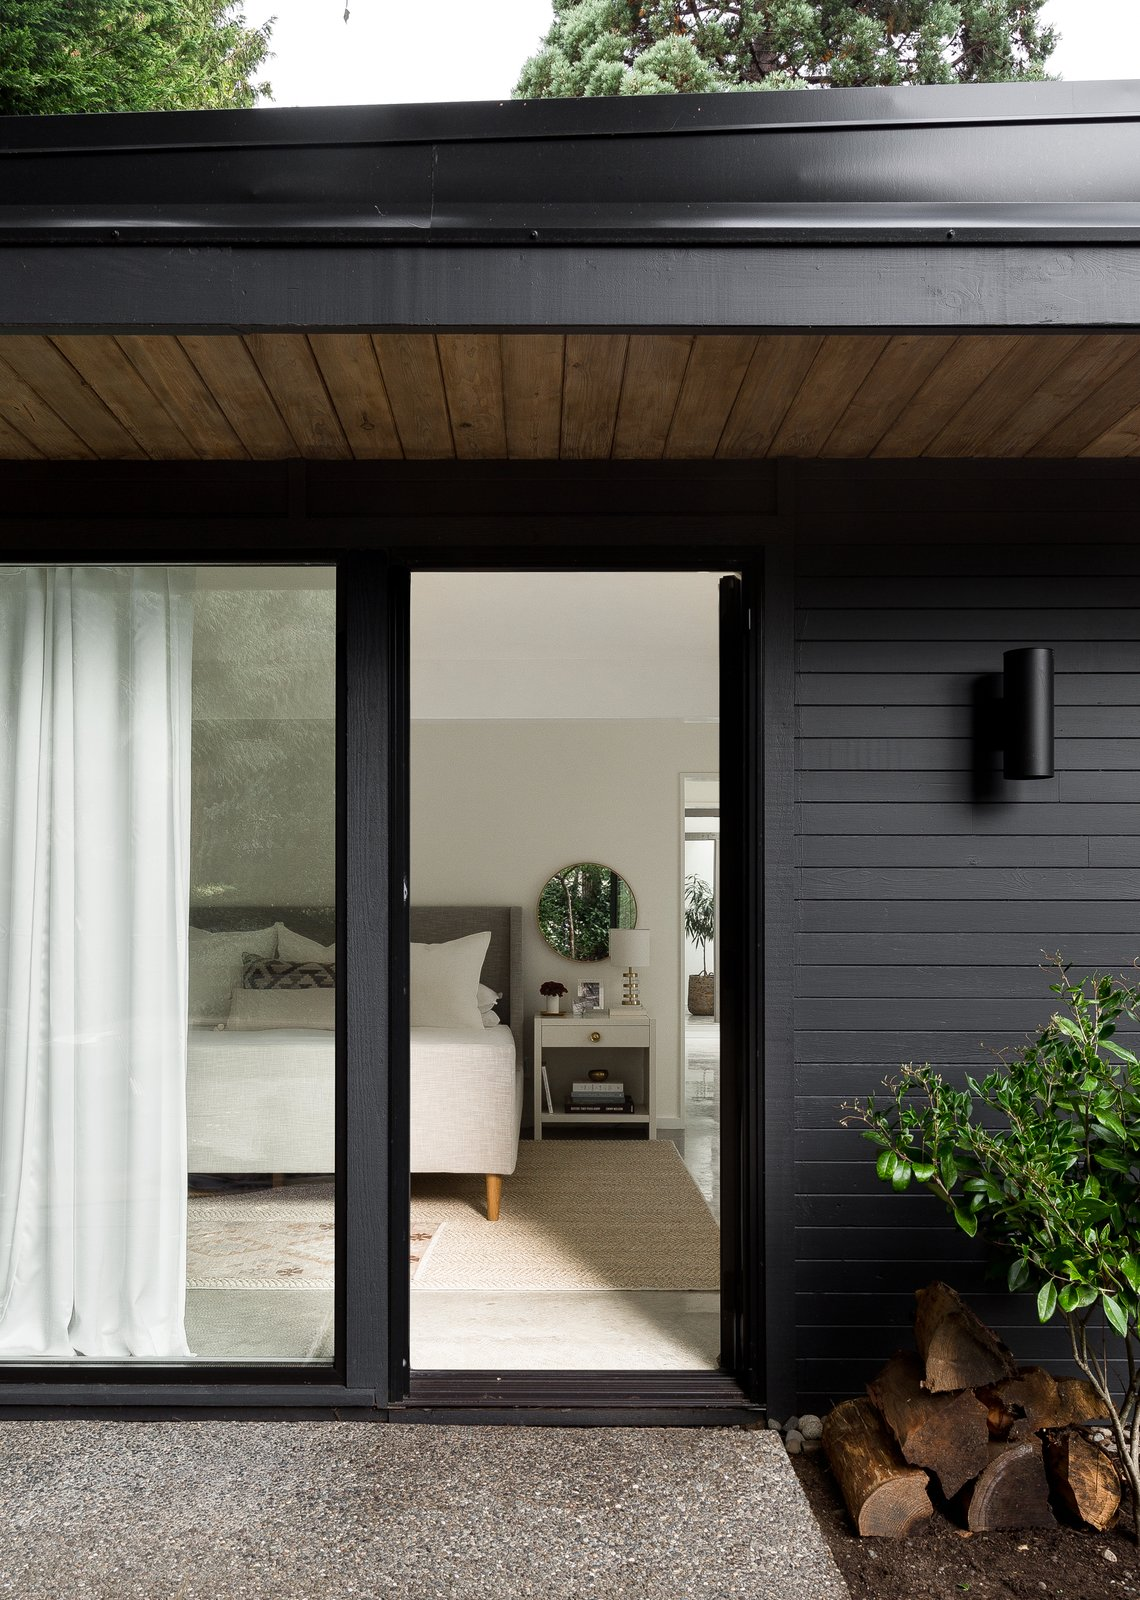 Doors, Sliding Door Type, And Exterior Generous Overhangs And Period  Lighting Speak To The